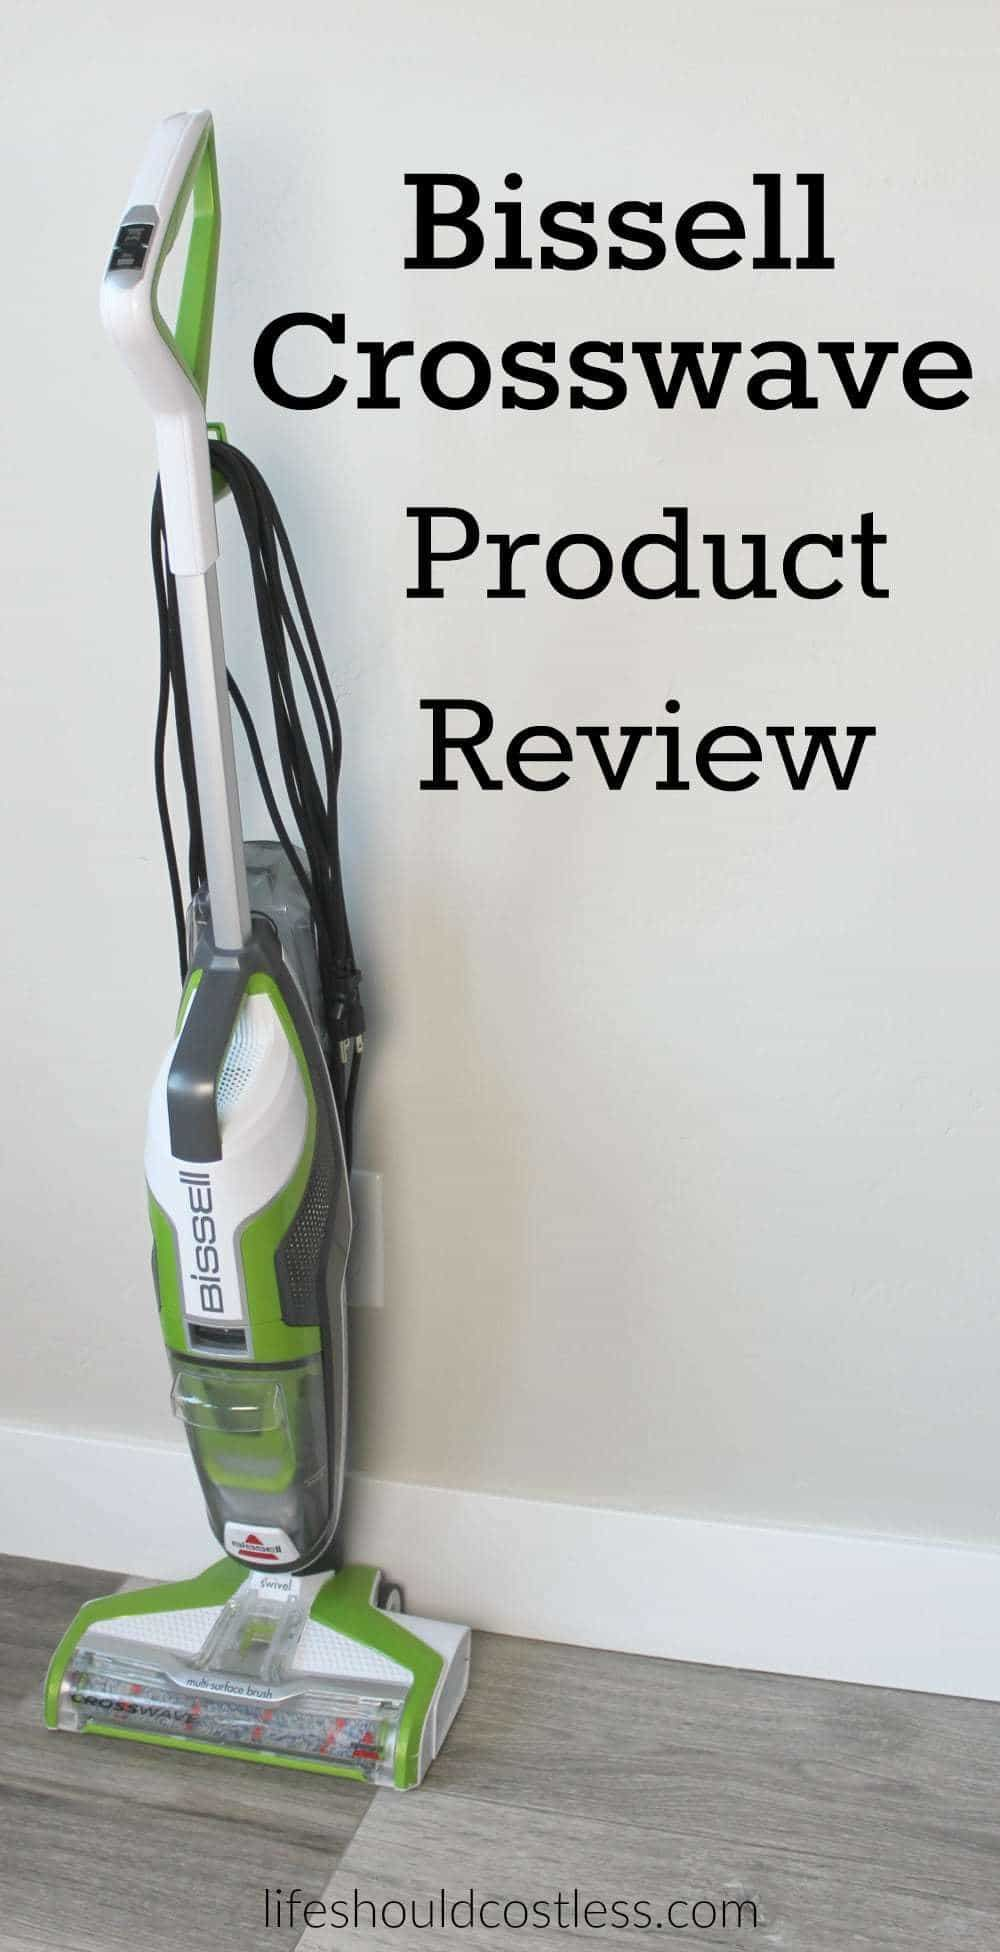 Bissell crosswave product review it sweeps and mops at the same bissell crosswave product review it sweeps and mops at the same time but how dailygadgetfo Image collections